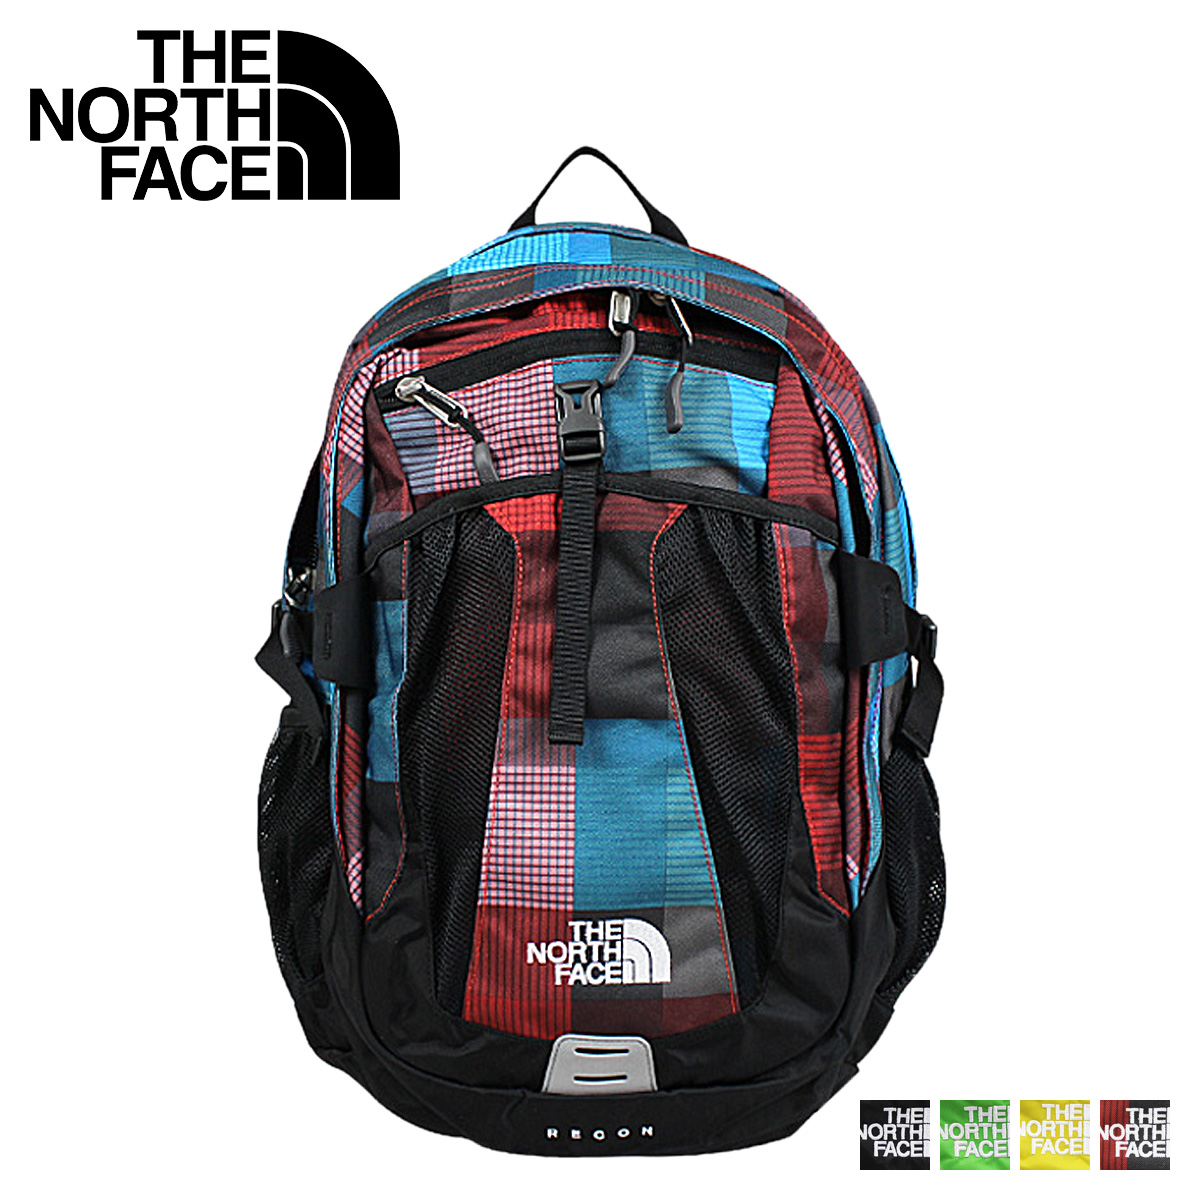 8f2e77c71 North Face THE NORTH FACE backpack rucksack 4 color RECON BACKPACK A92X men